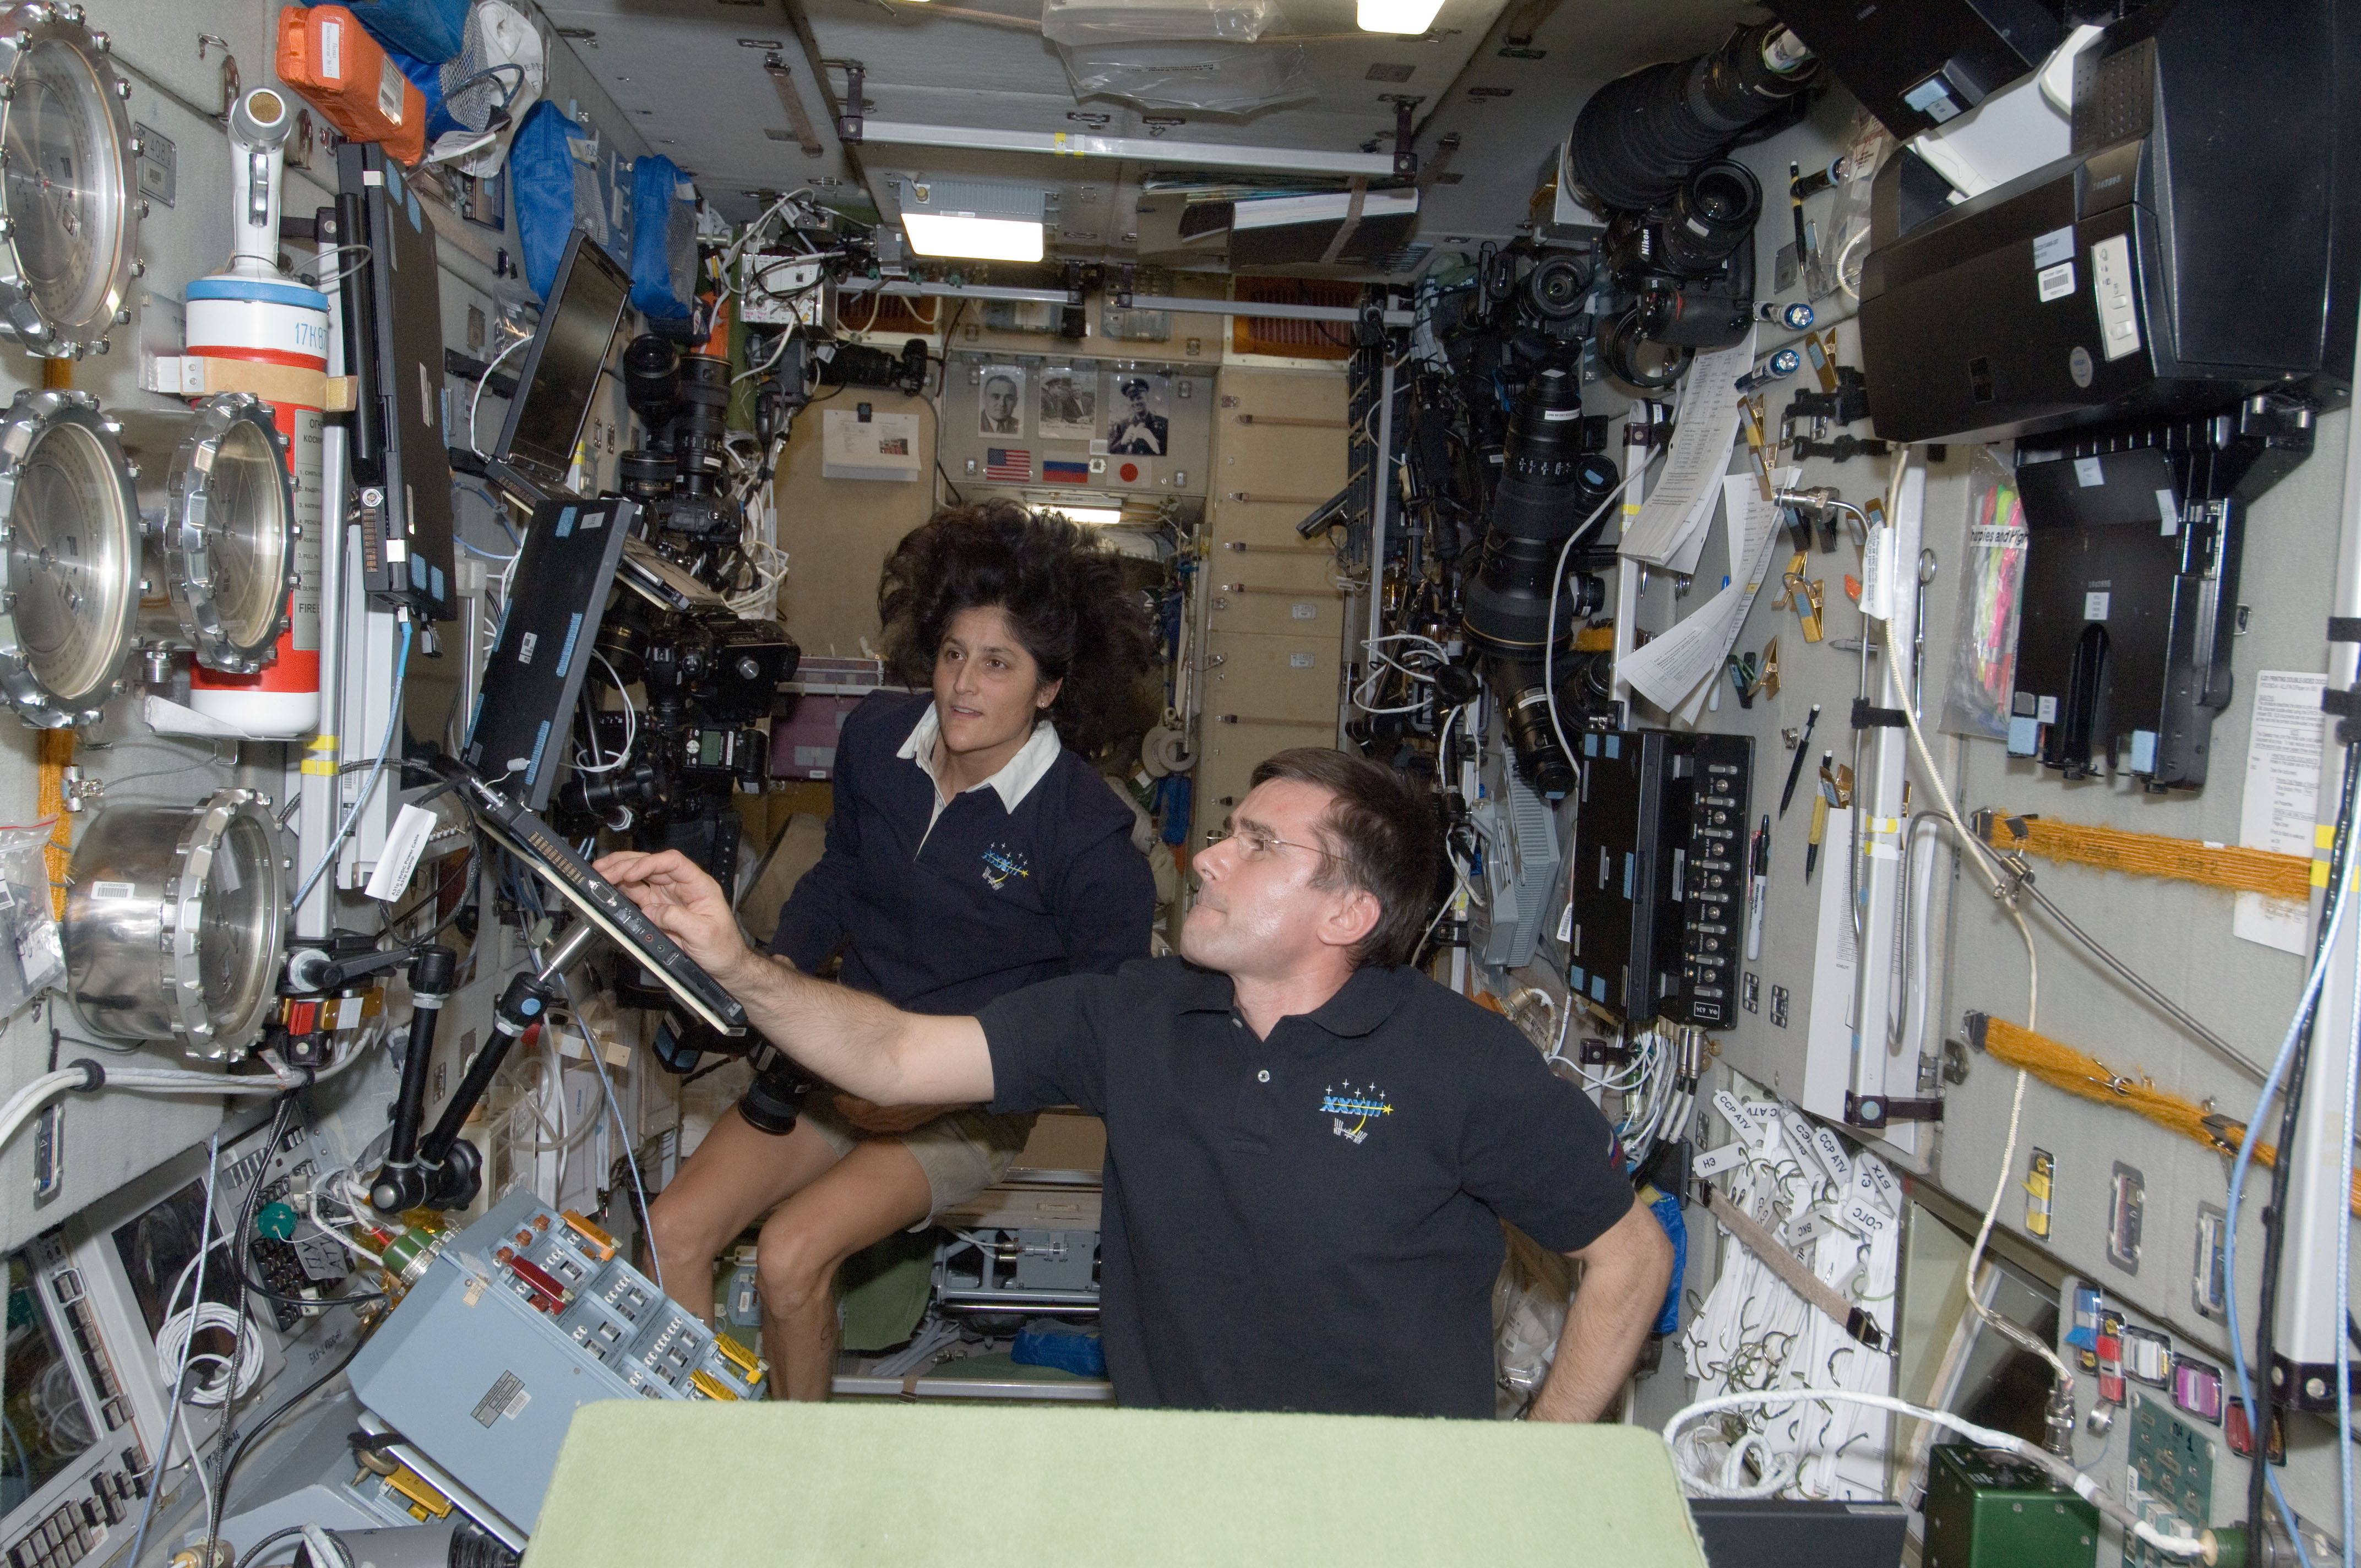 Williams and Malenchenko Work at ISS Zvezda Service Module